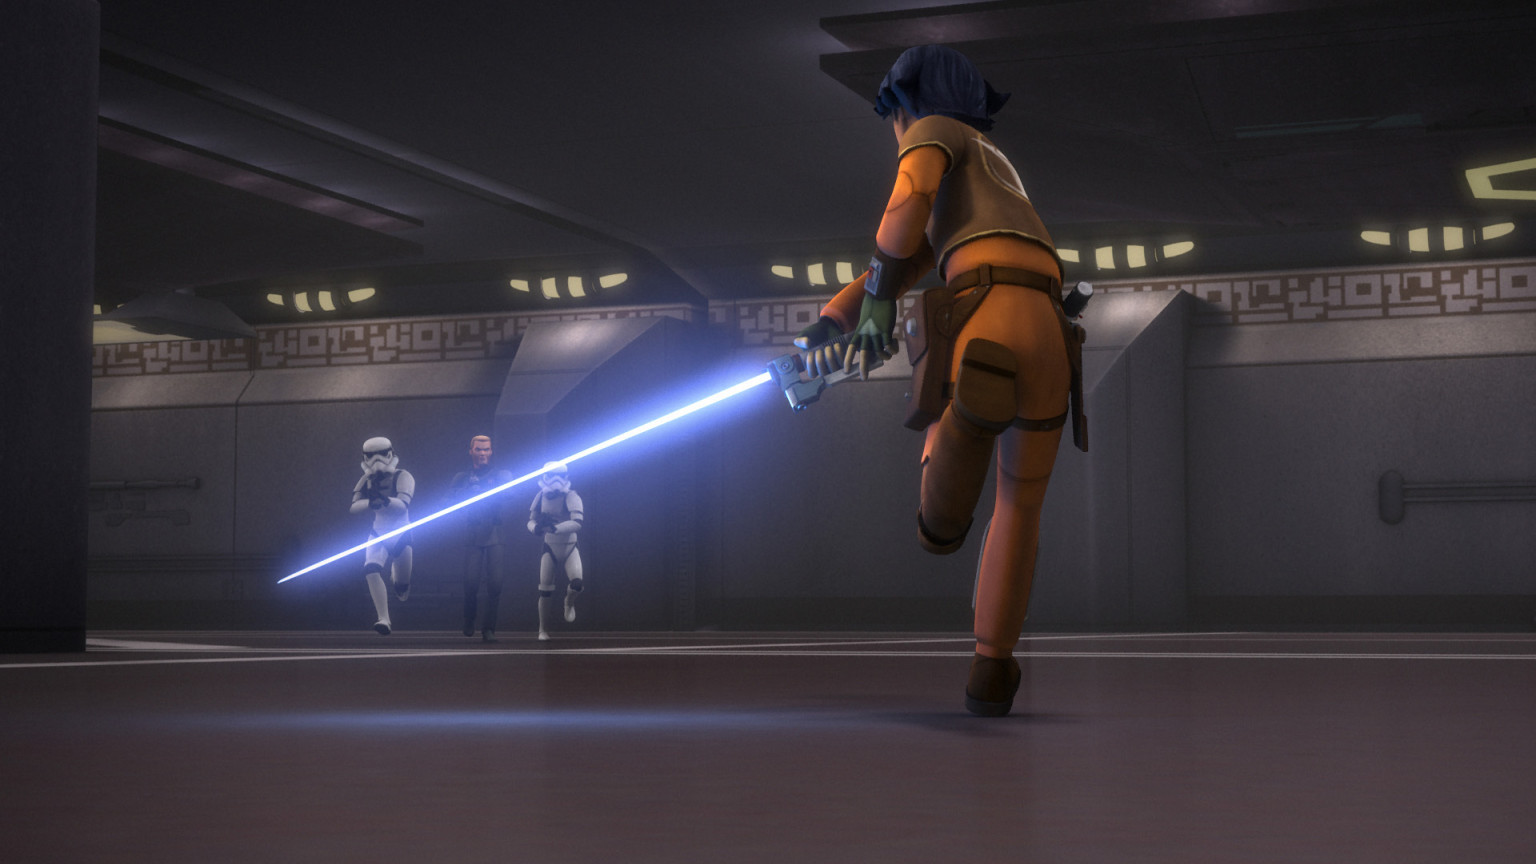 Star Wars Rebels - Ezra Bridger